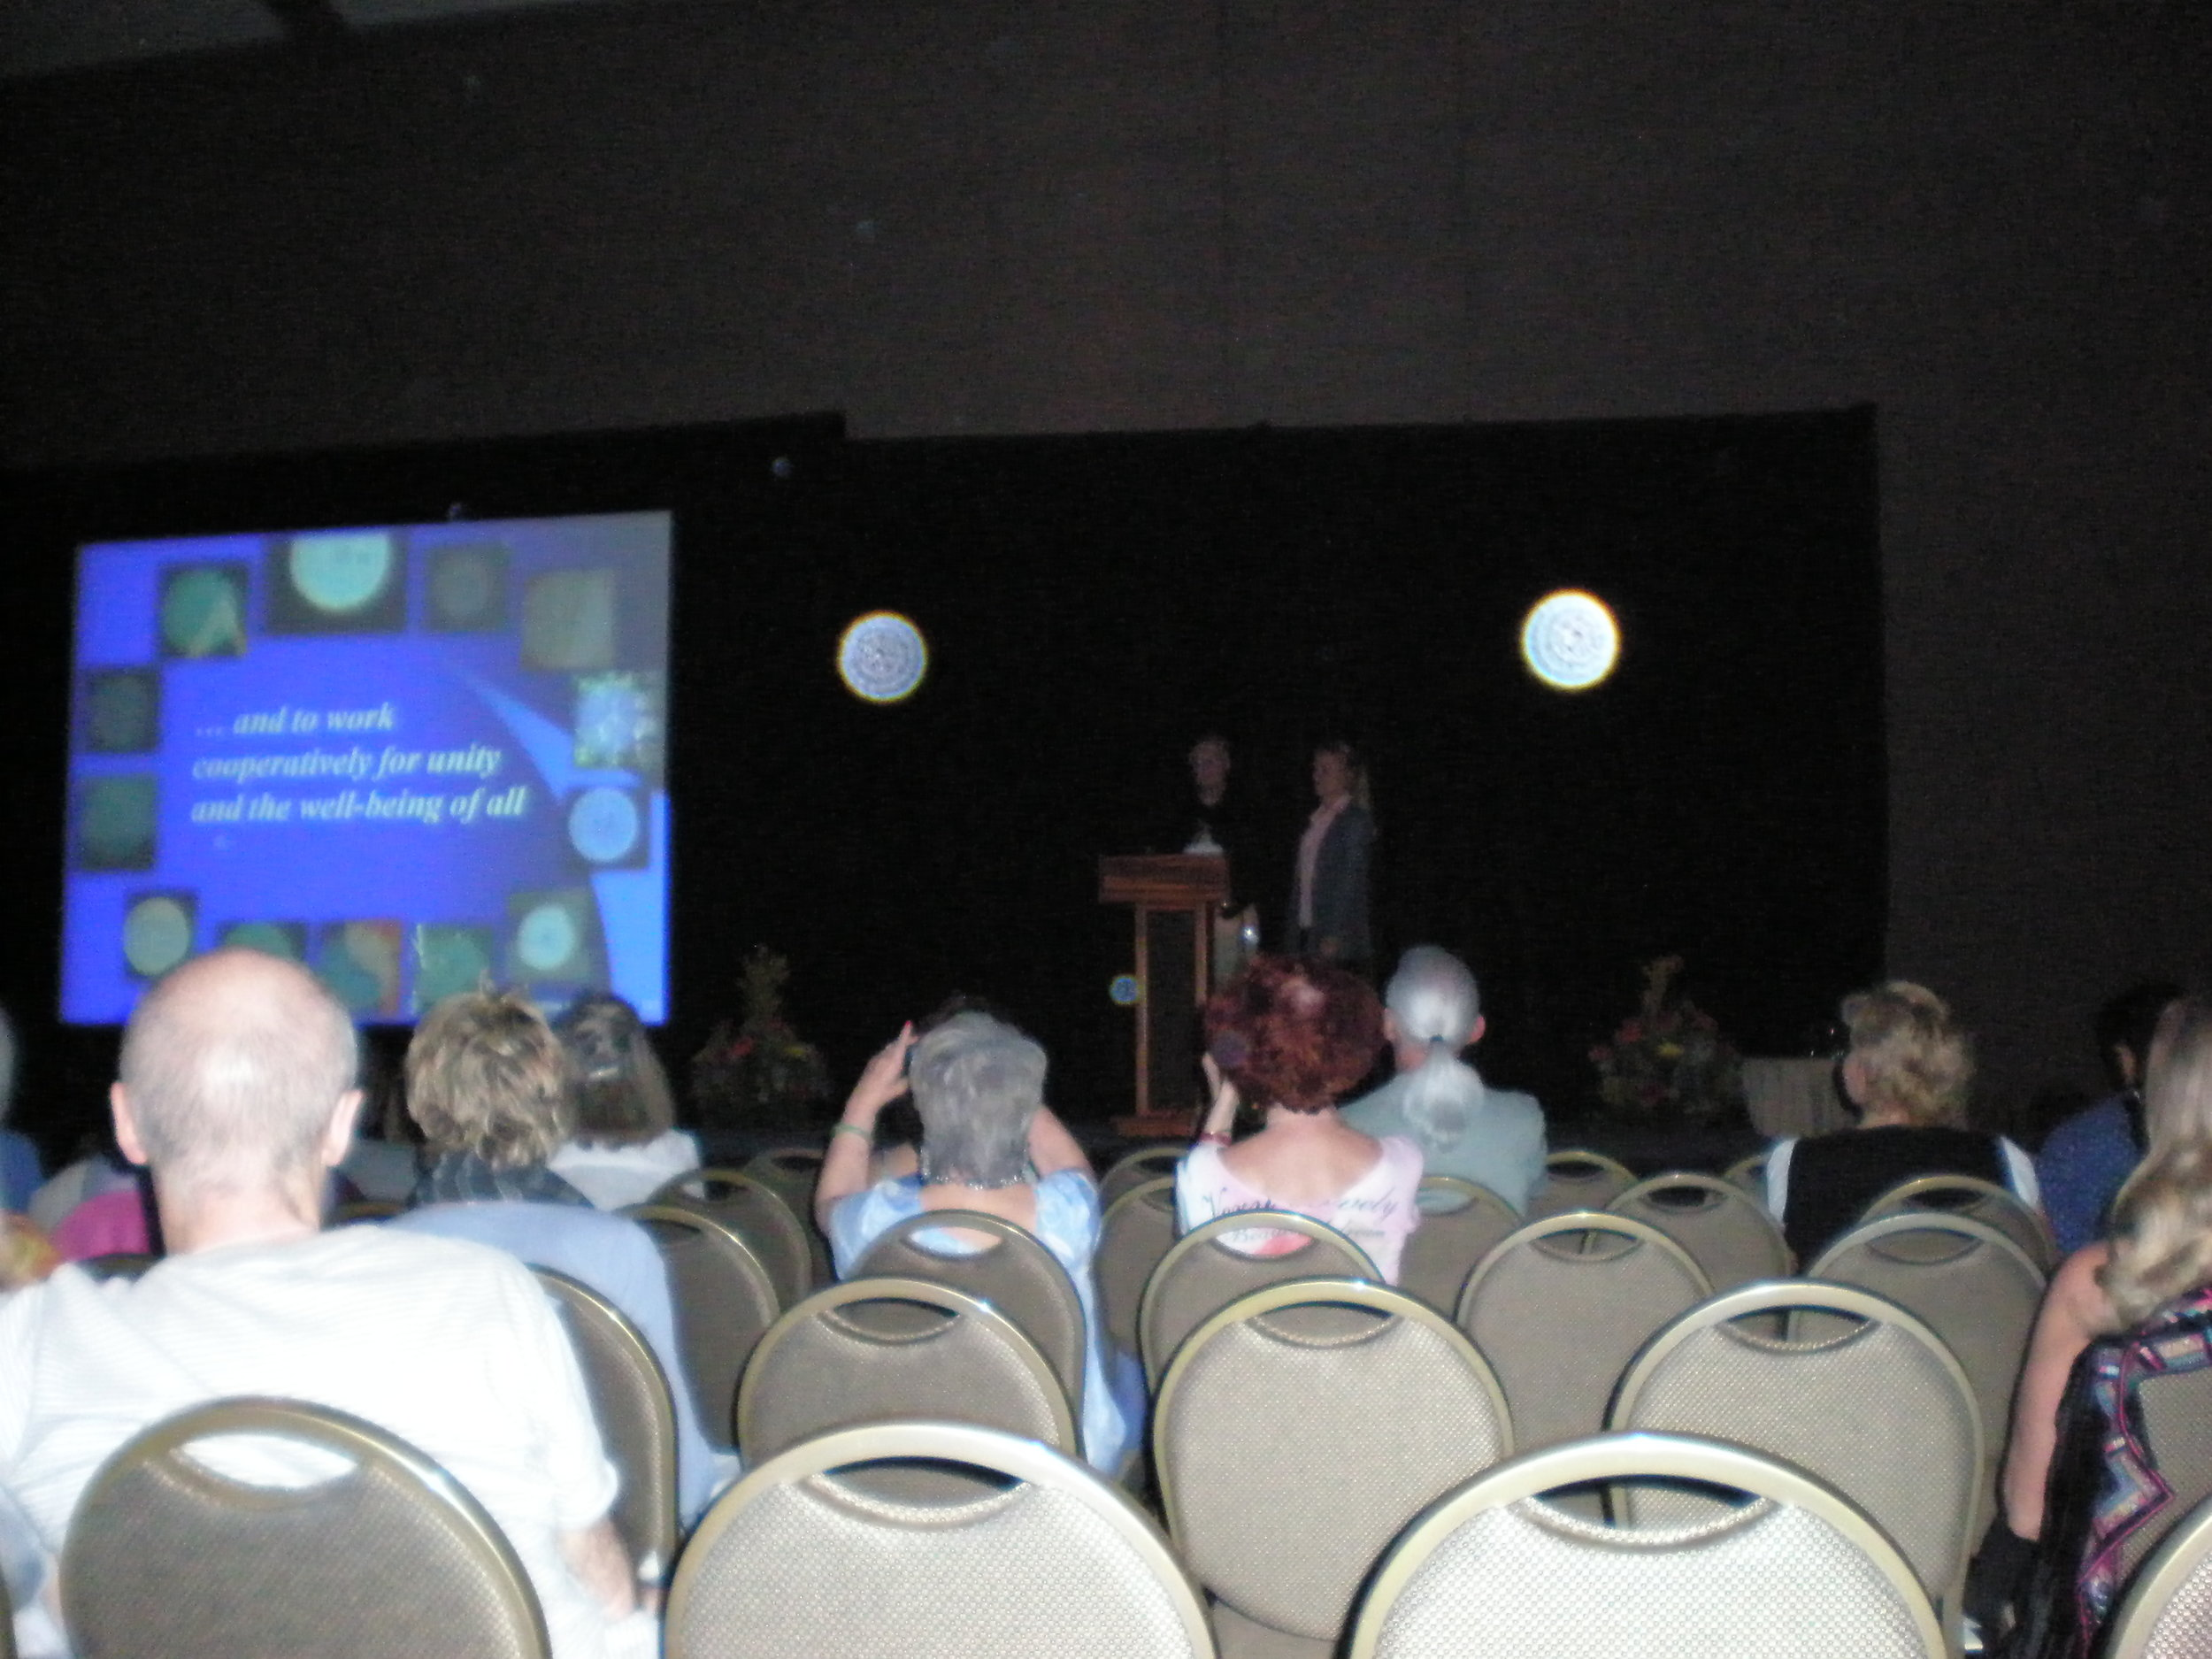 Photo 27: During our presentation at a conference on orbs.